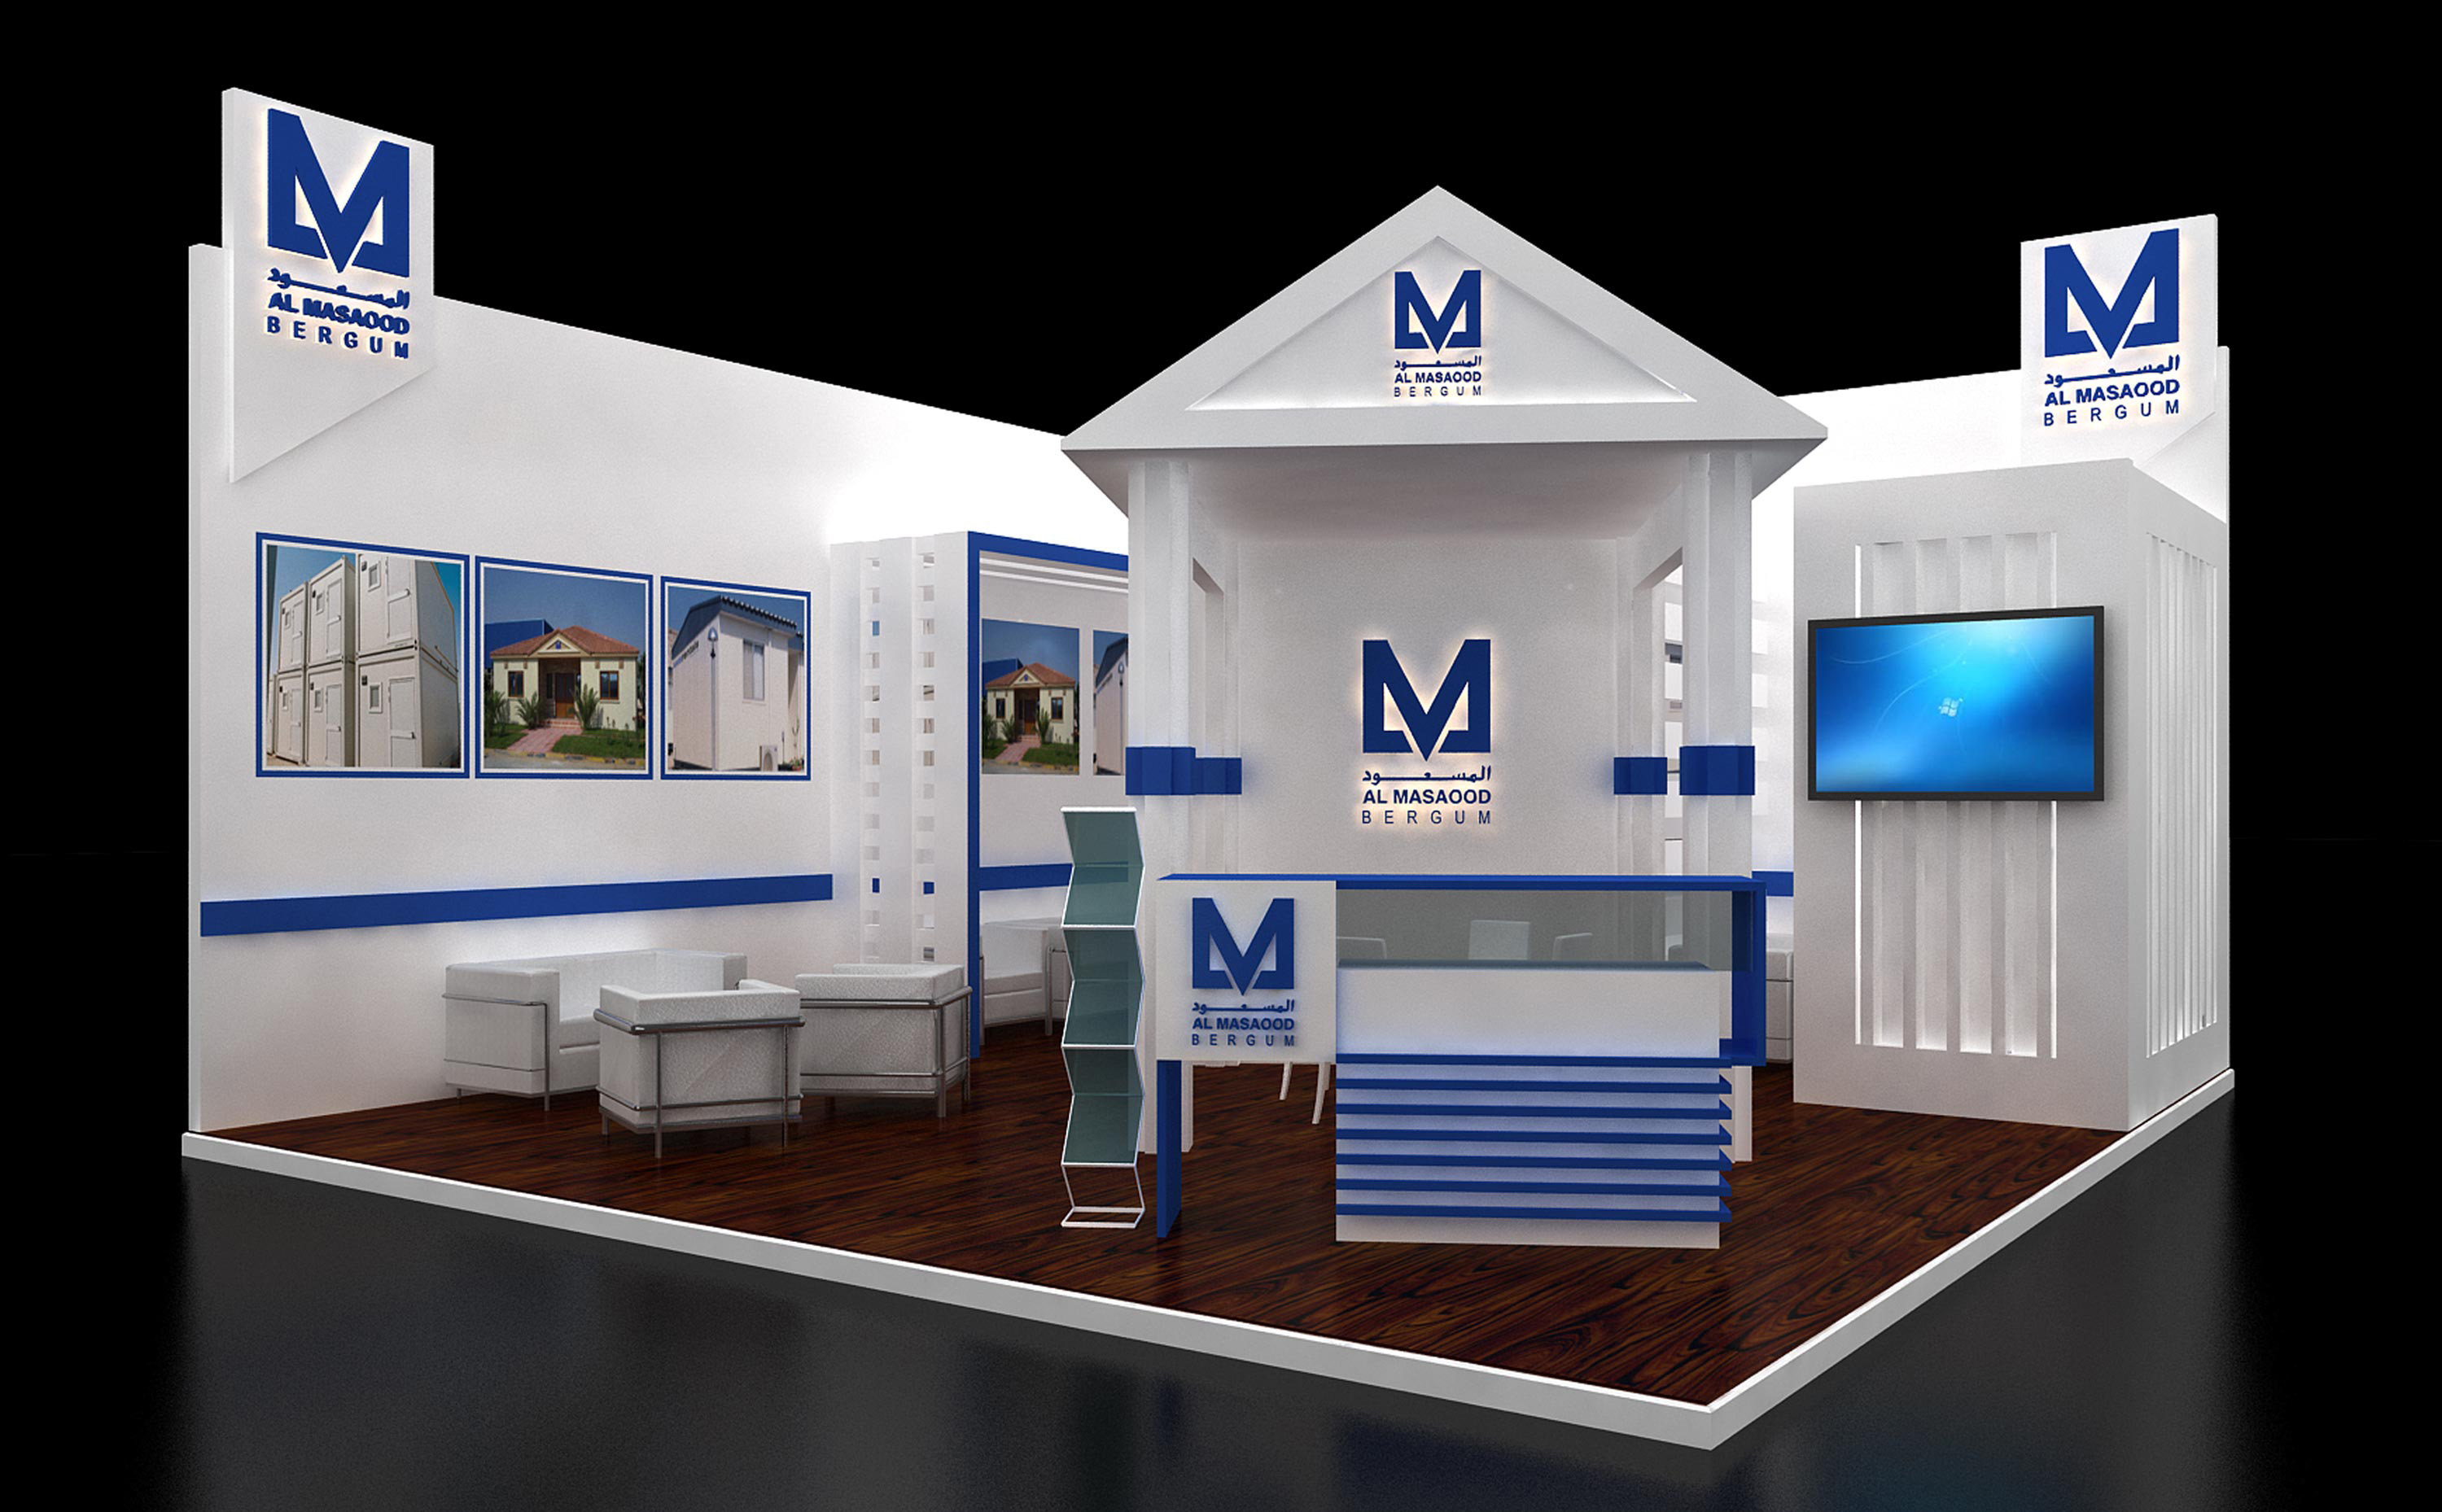 Exhibition Stand Designer Job Description : Al masaood adipec by saleem ali at coroflot